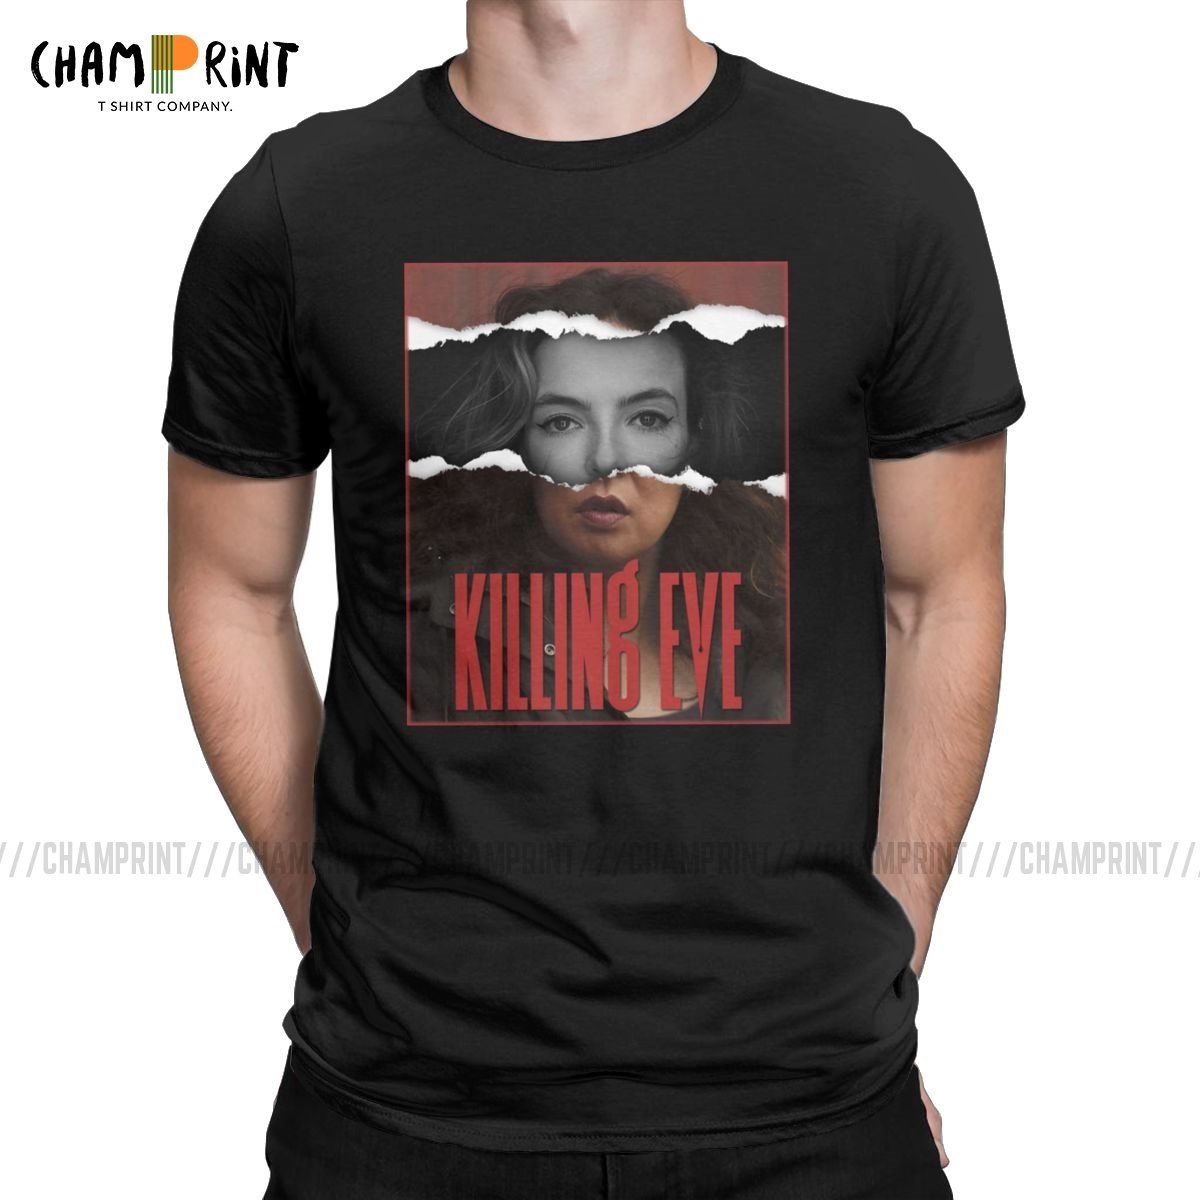 VillanEve T Shirts For Men Cotton Funny T-Shirt Crew Neck Killing Eve Tee Shirt Short Sleeve Clothing Gift Idea